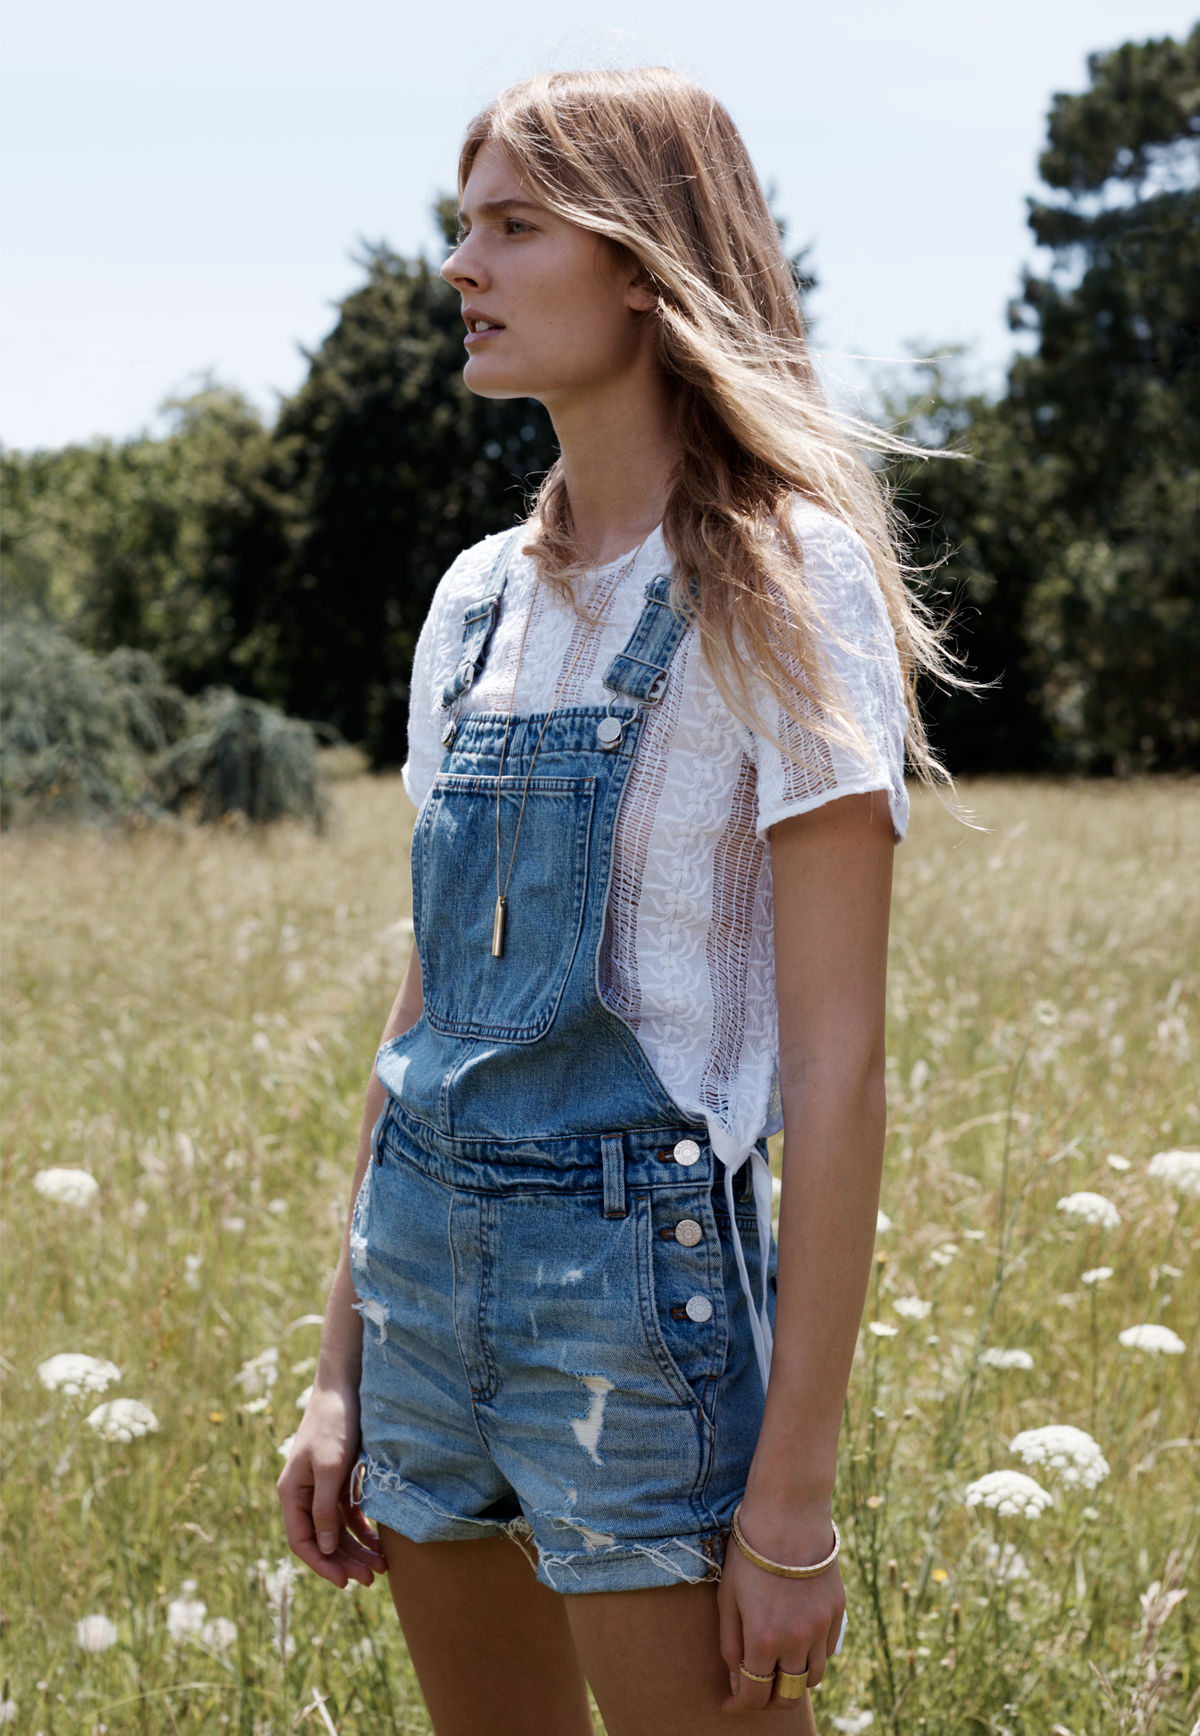 c846279a12 madewell adirondack short overalls worn with the lace side-tie tee +  cylinder pendant necklace.  everydaymadewell